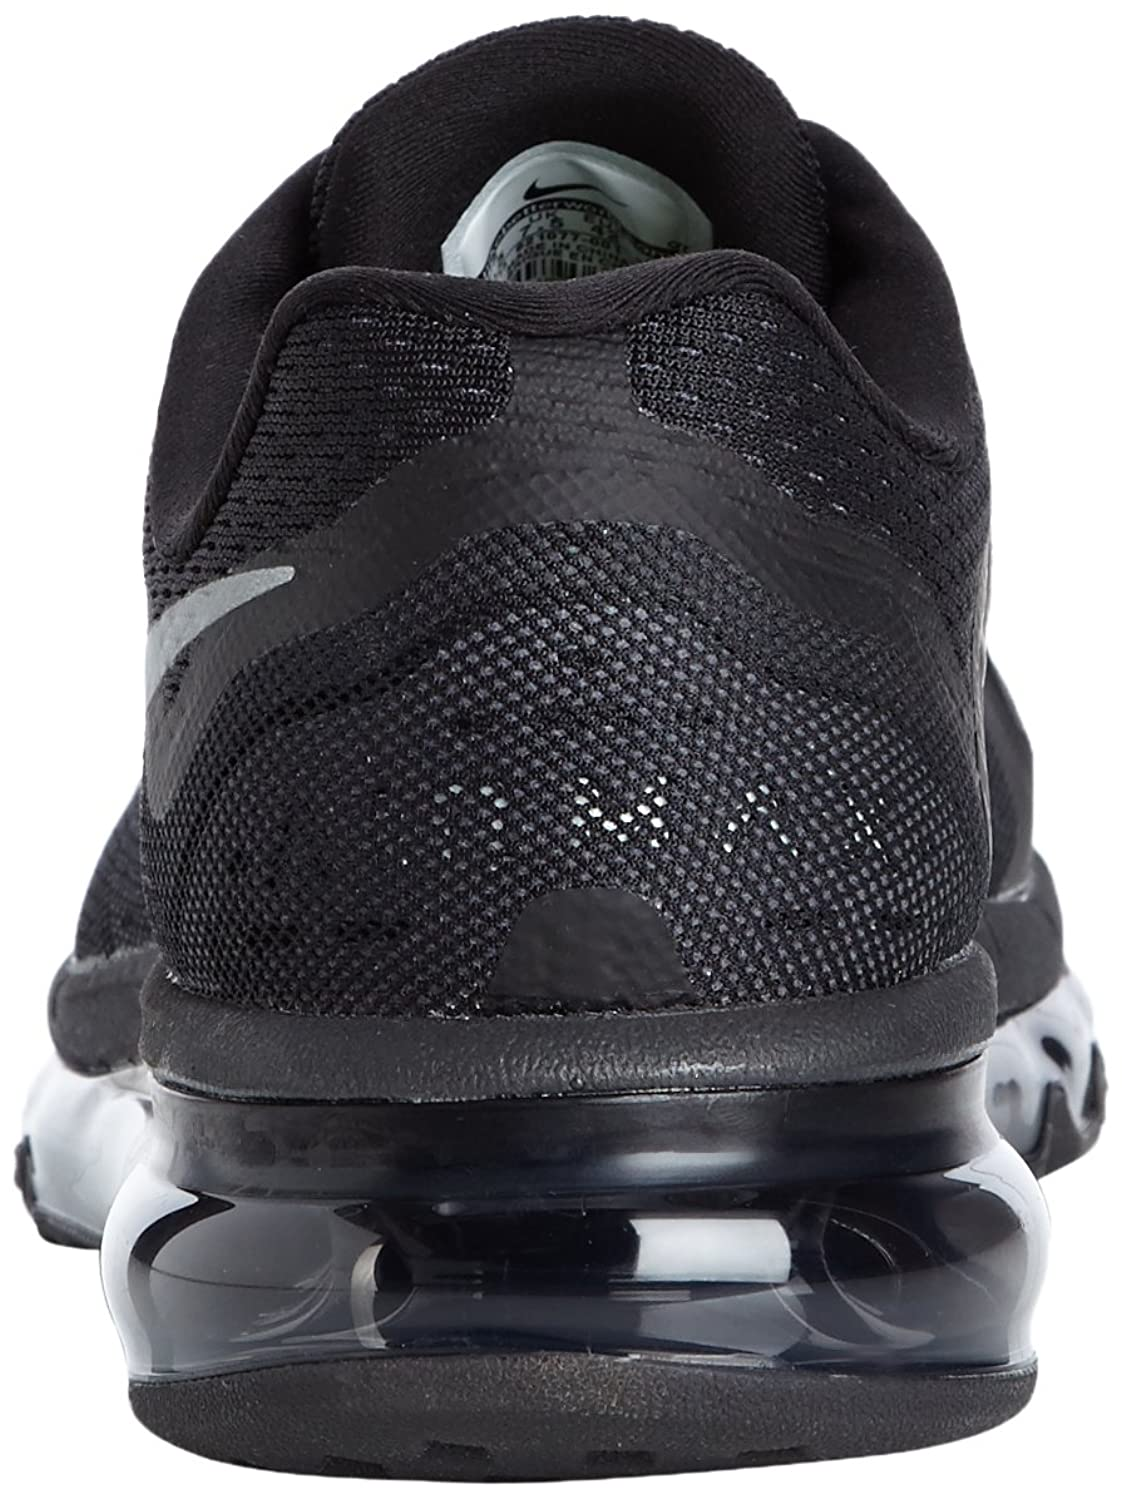 Nike Air Max 2014 Black/Silver Mens Running Trainers Shoes